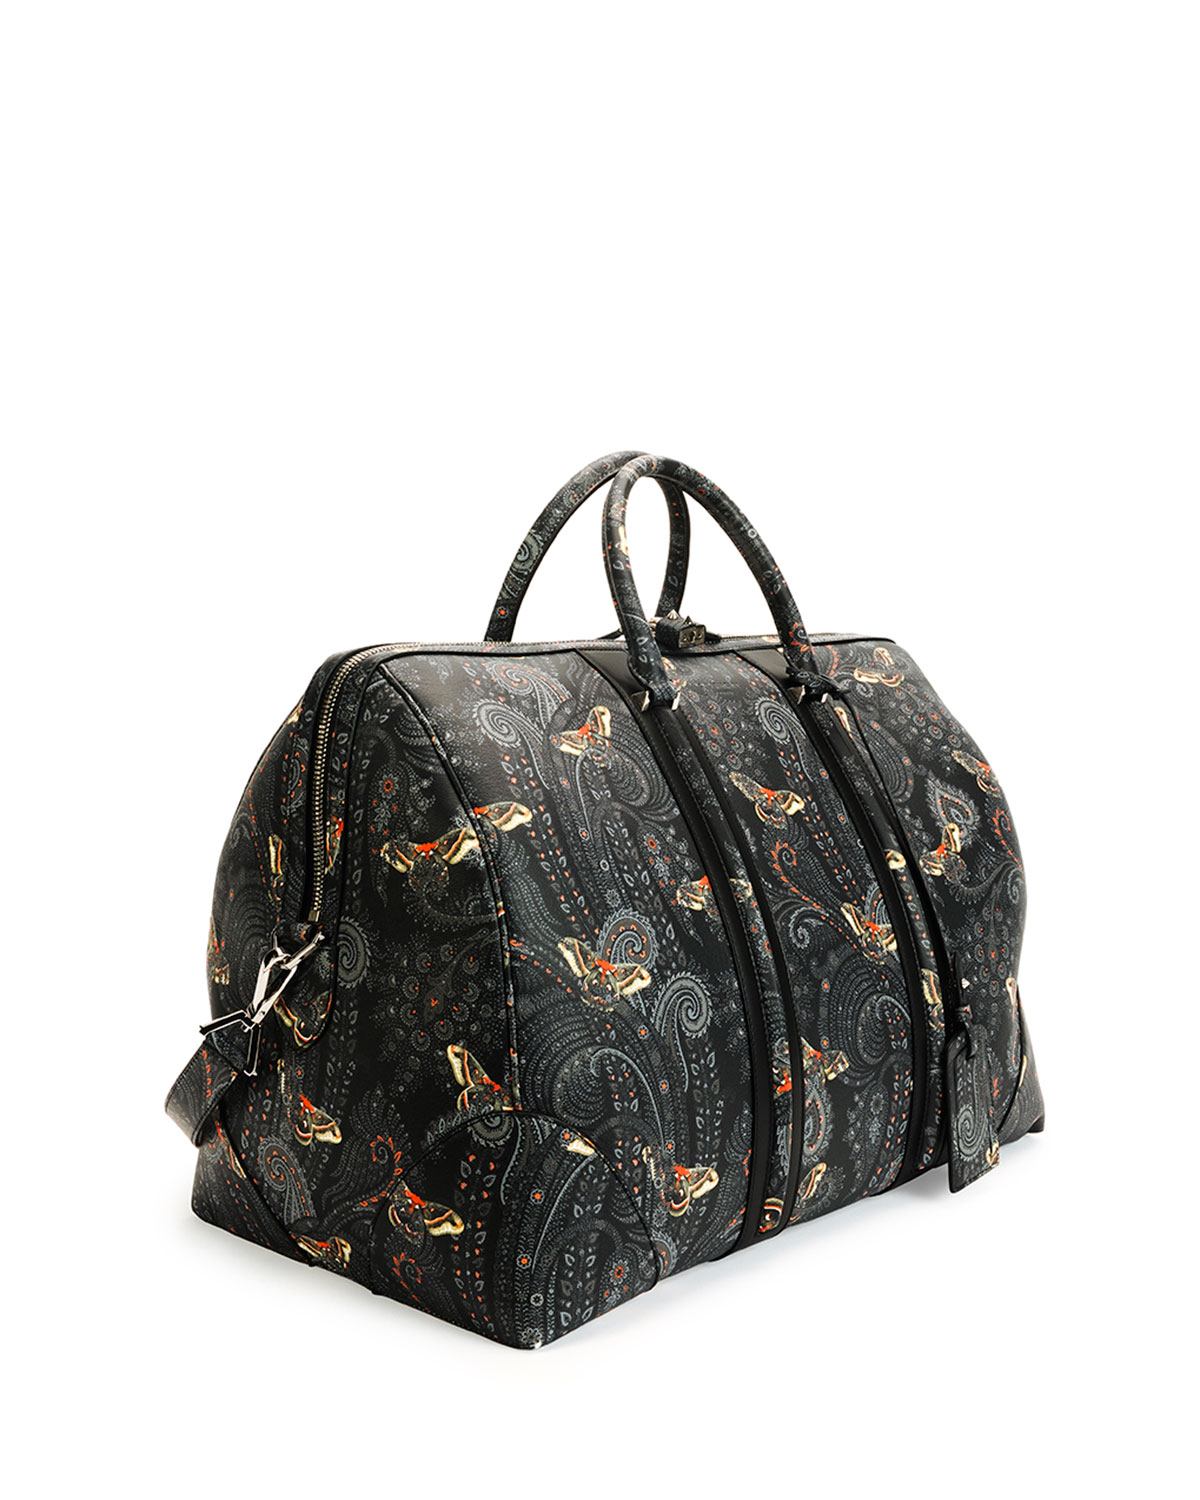 b2eb3b7071 Givenchy Paisley-Print Leather Weekender Bag in Black for Men - Lyst